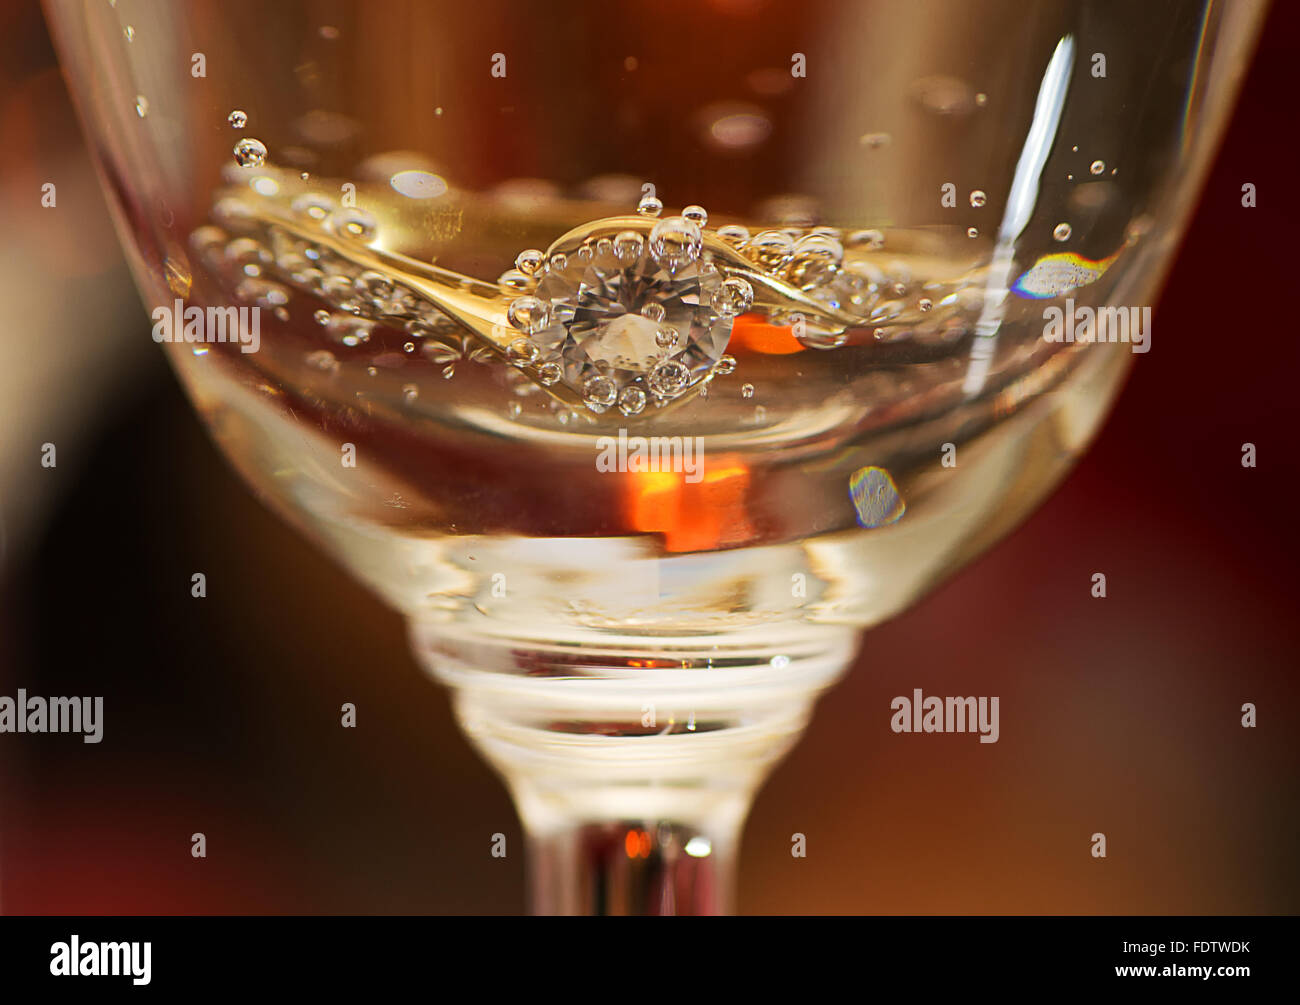 An engagement ring in a glass of champagne. - Stock Image